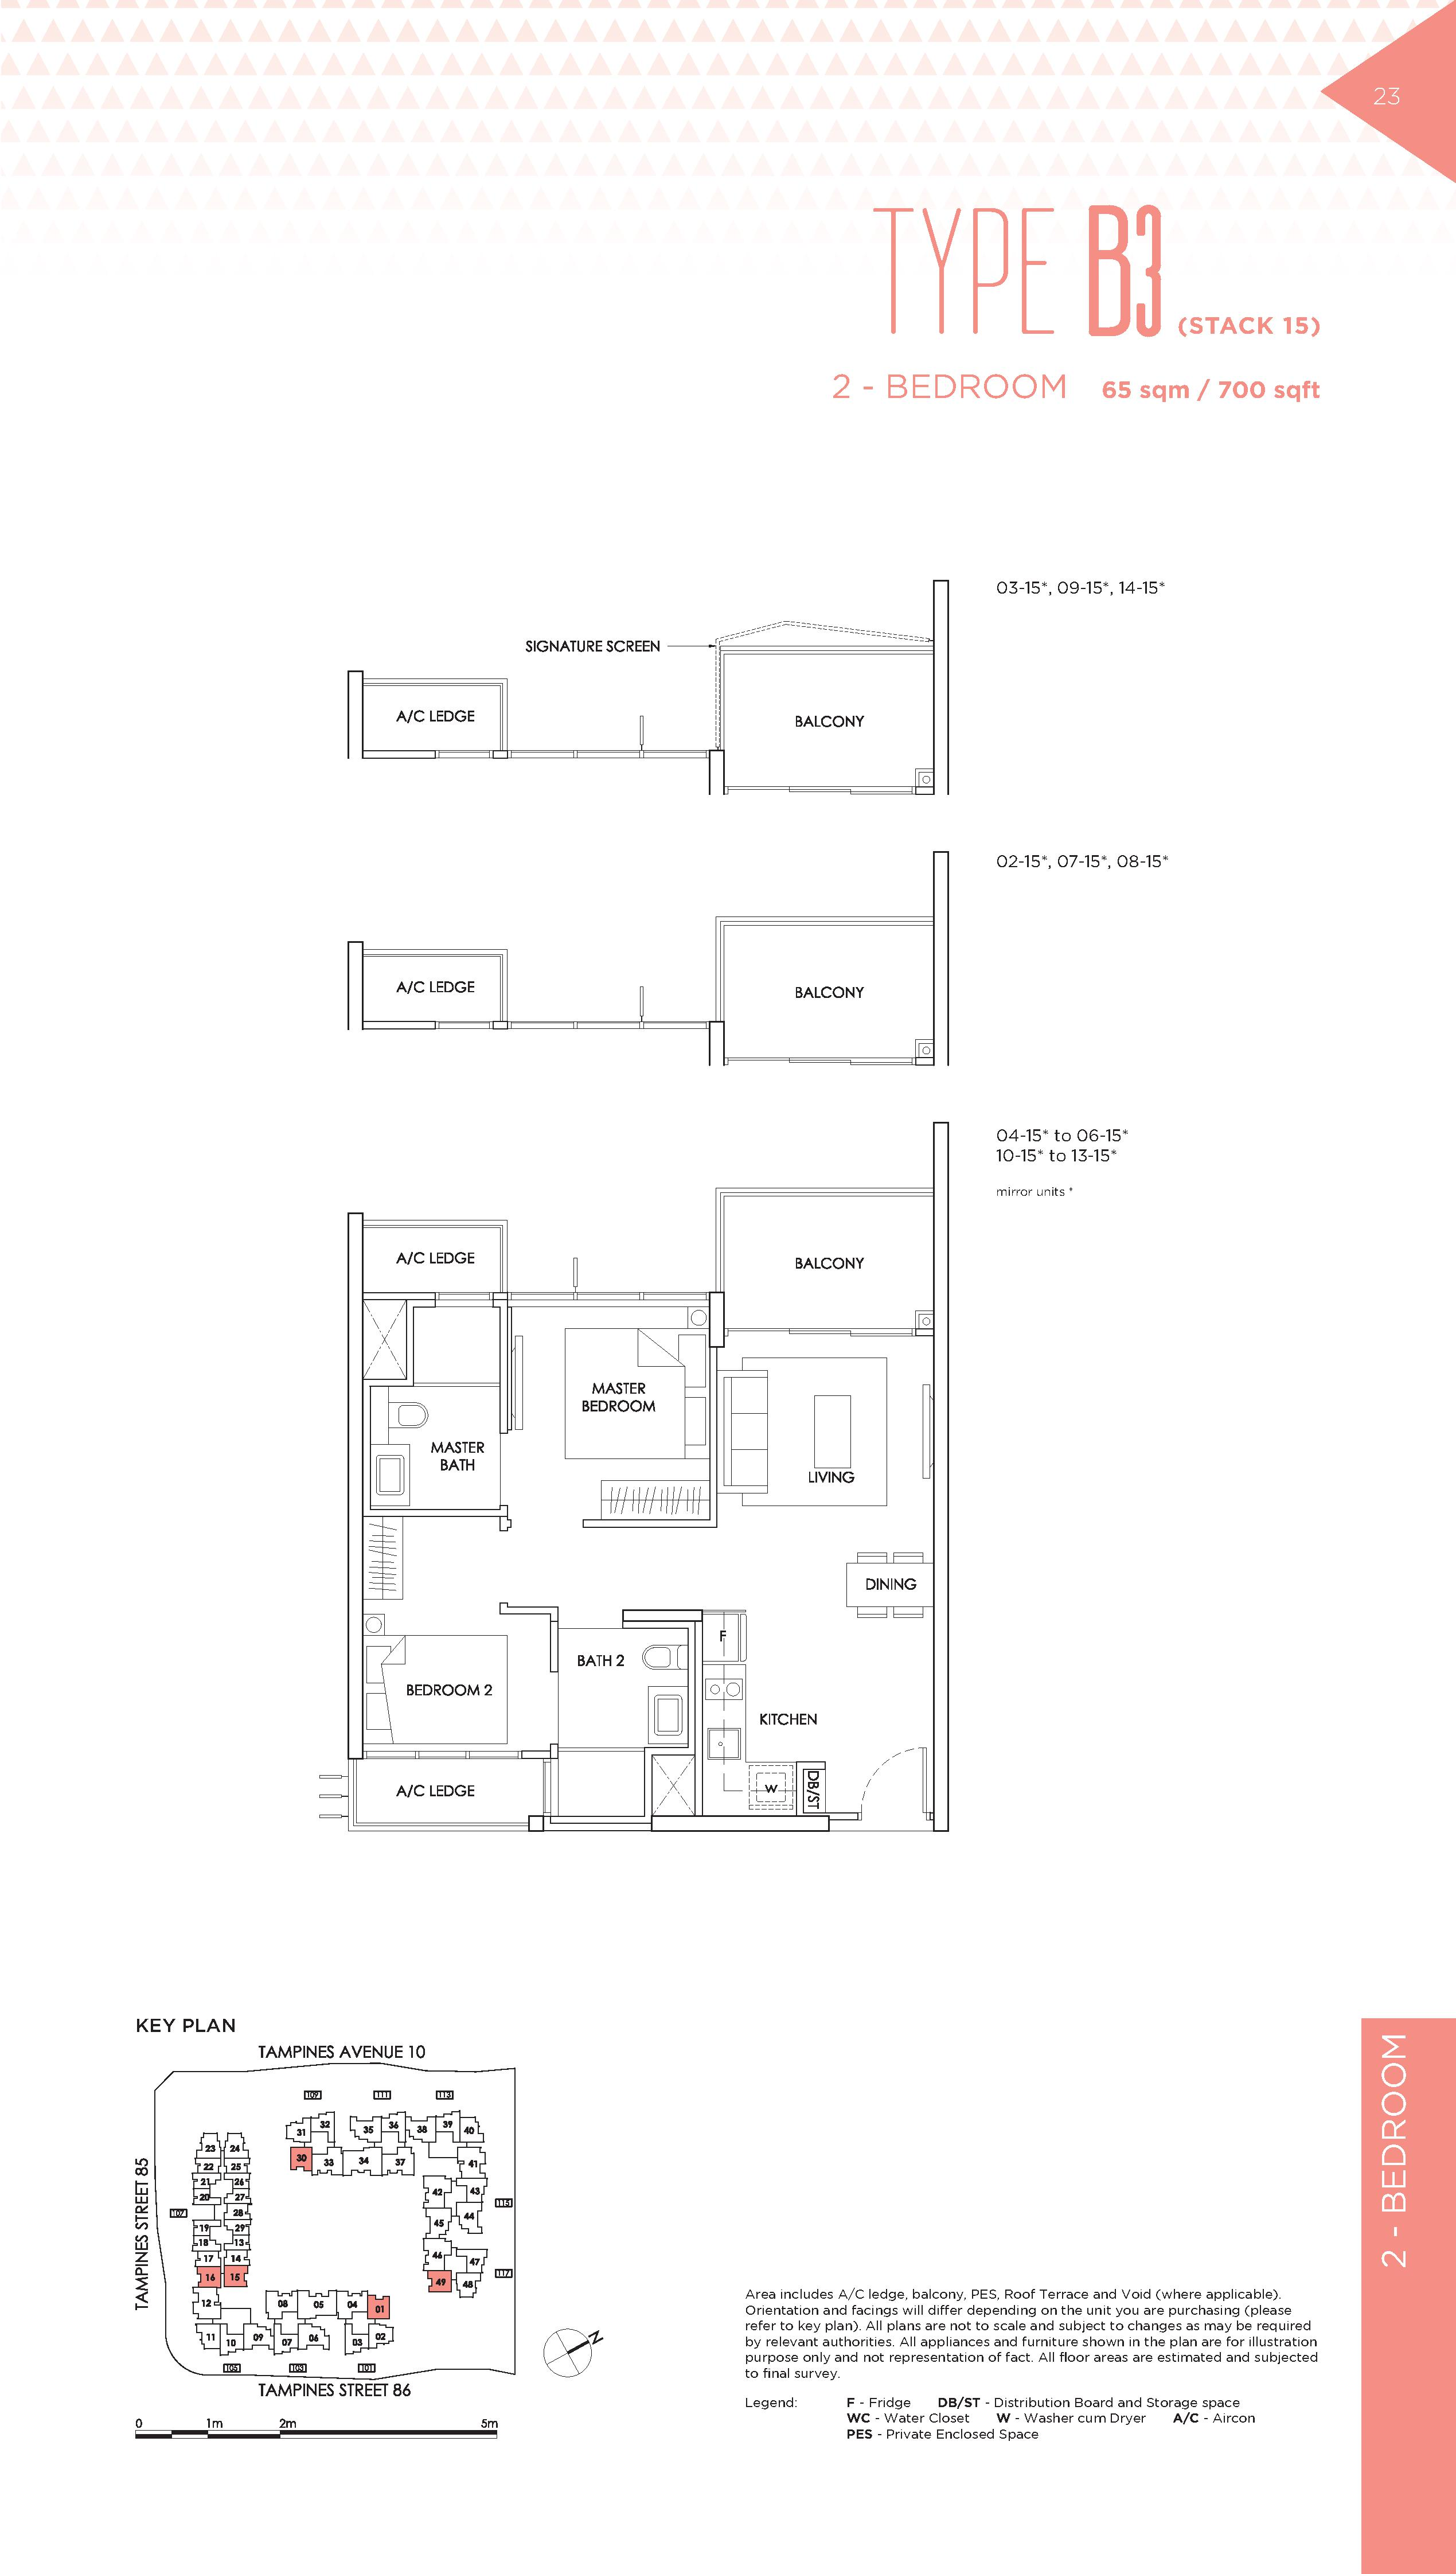 The Alps Residences 2 Bedroom Floor Plans Type B3(Stack 15)